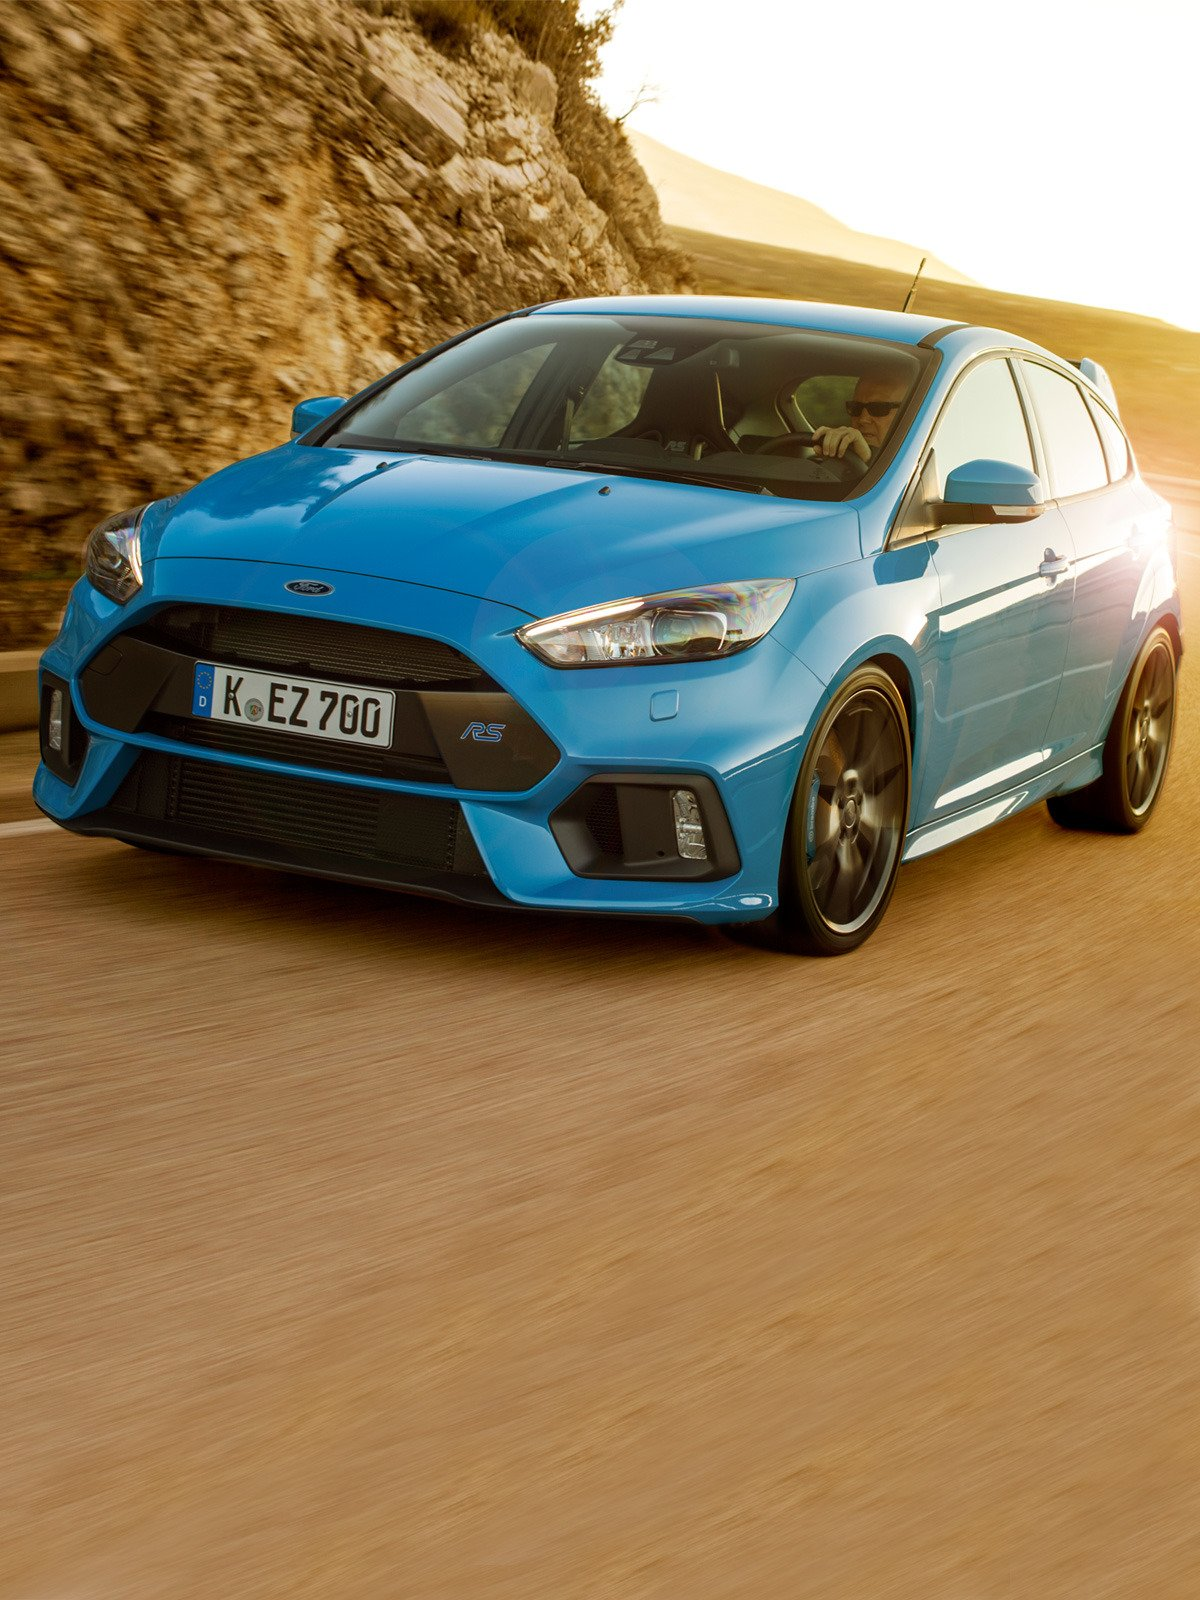 Amazon.com: 2016 Ford Focus RS Test (350 PS) - Fahrbericht - Review: Robert Pajak, Christian Brinkmann